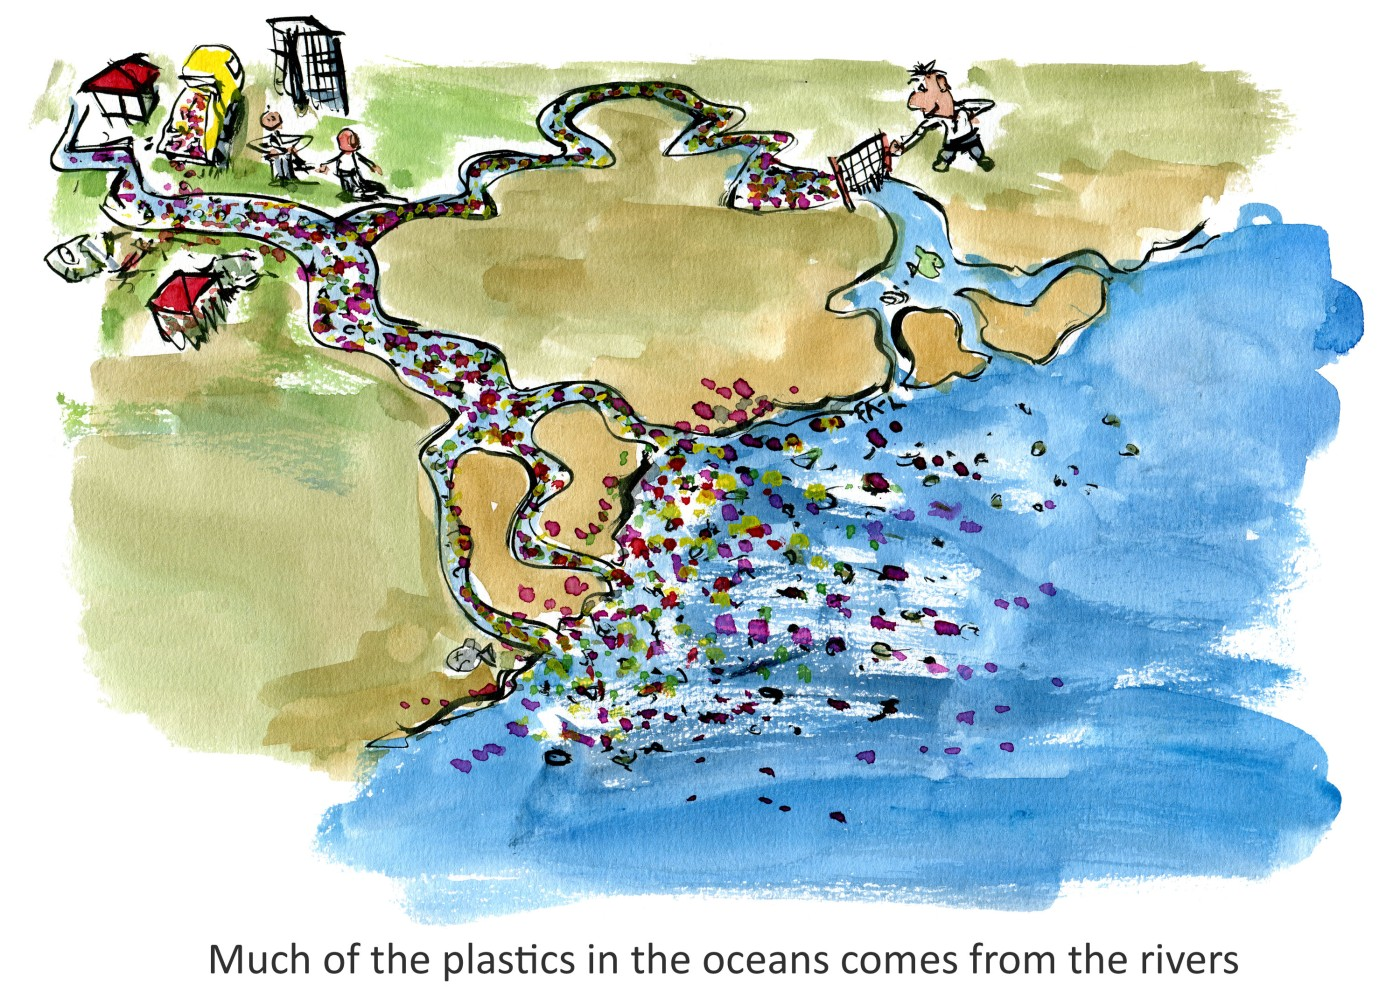 Drawing of rivers leading pollution into the ocean, with one person working to stop it with a net. illustration by Frits Ahlefeldt